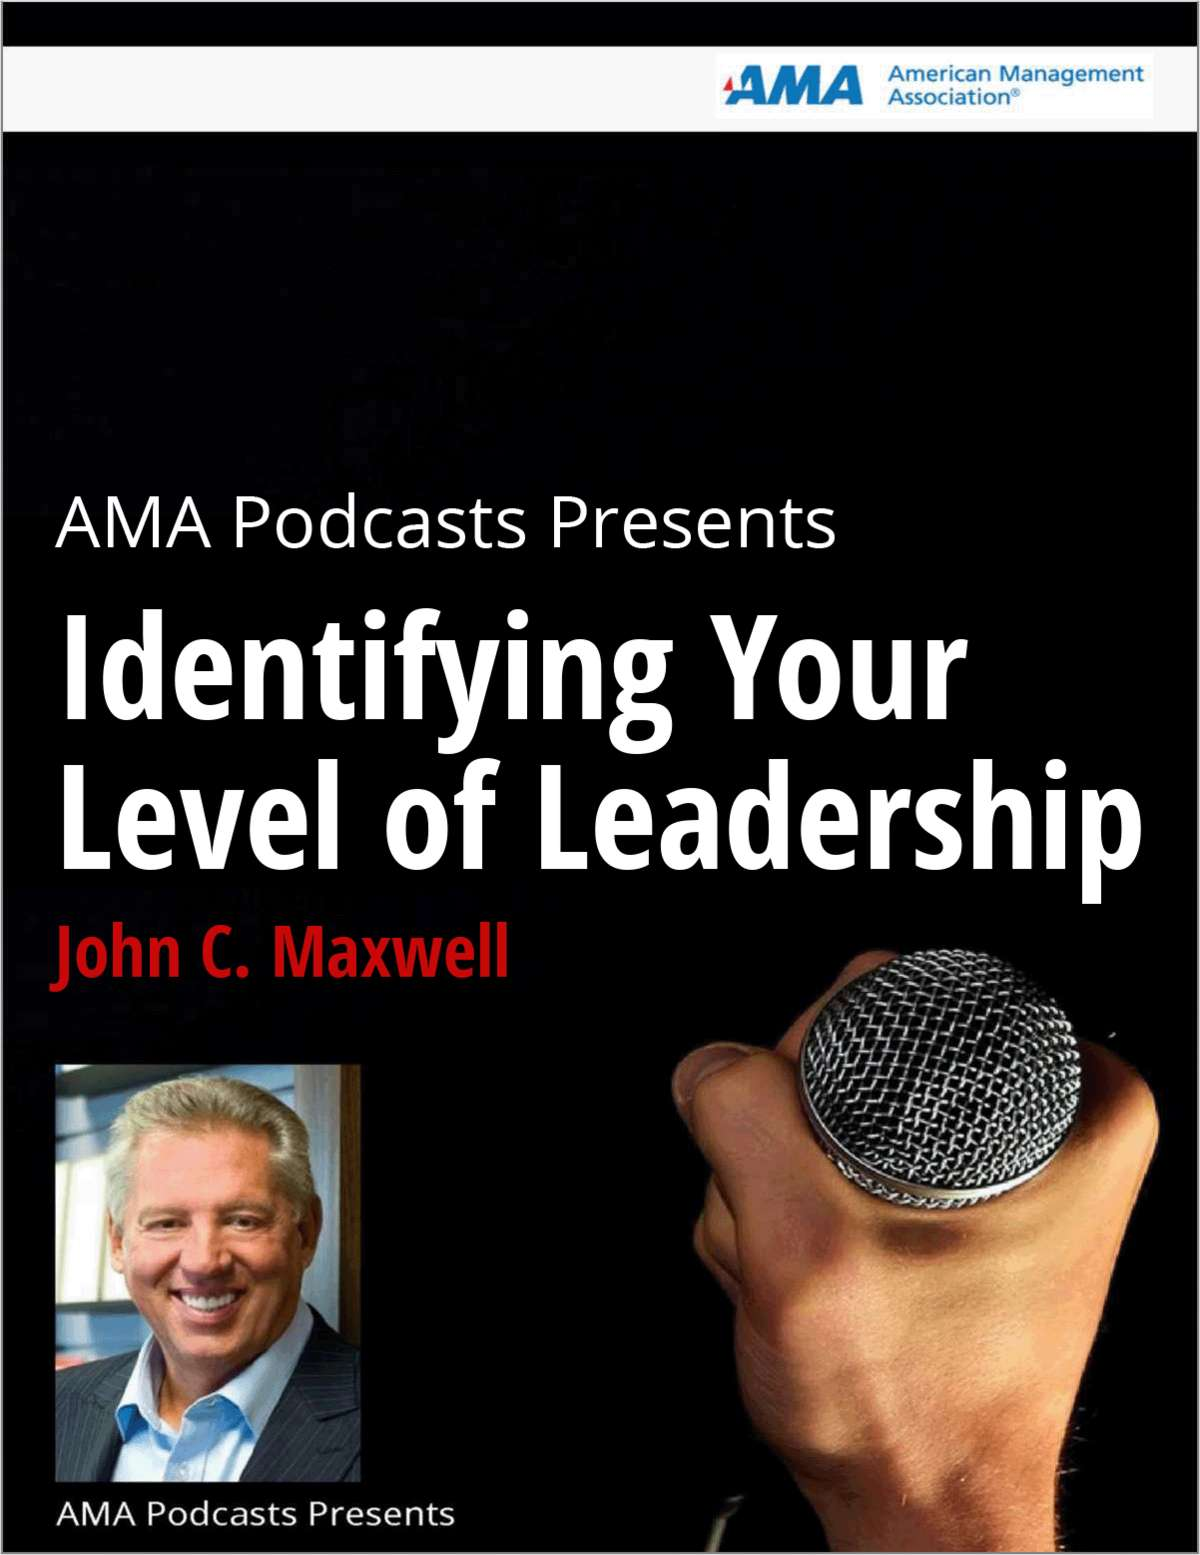 John C. Maxwell on Identifying Your Level of Leadership